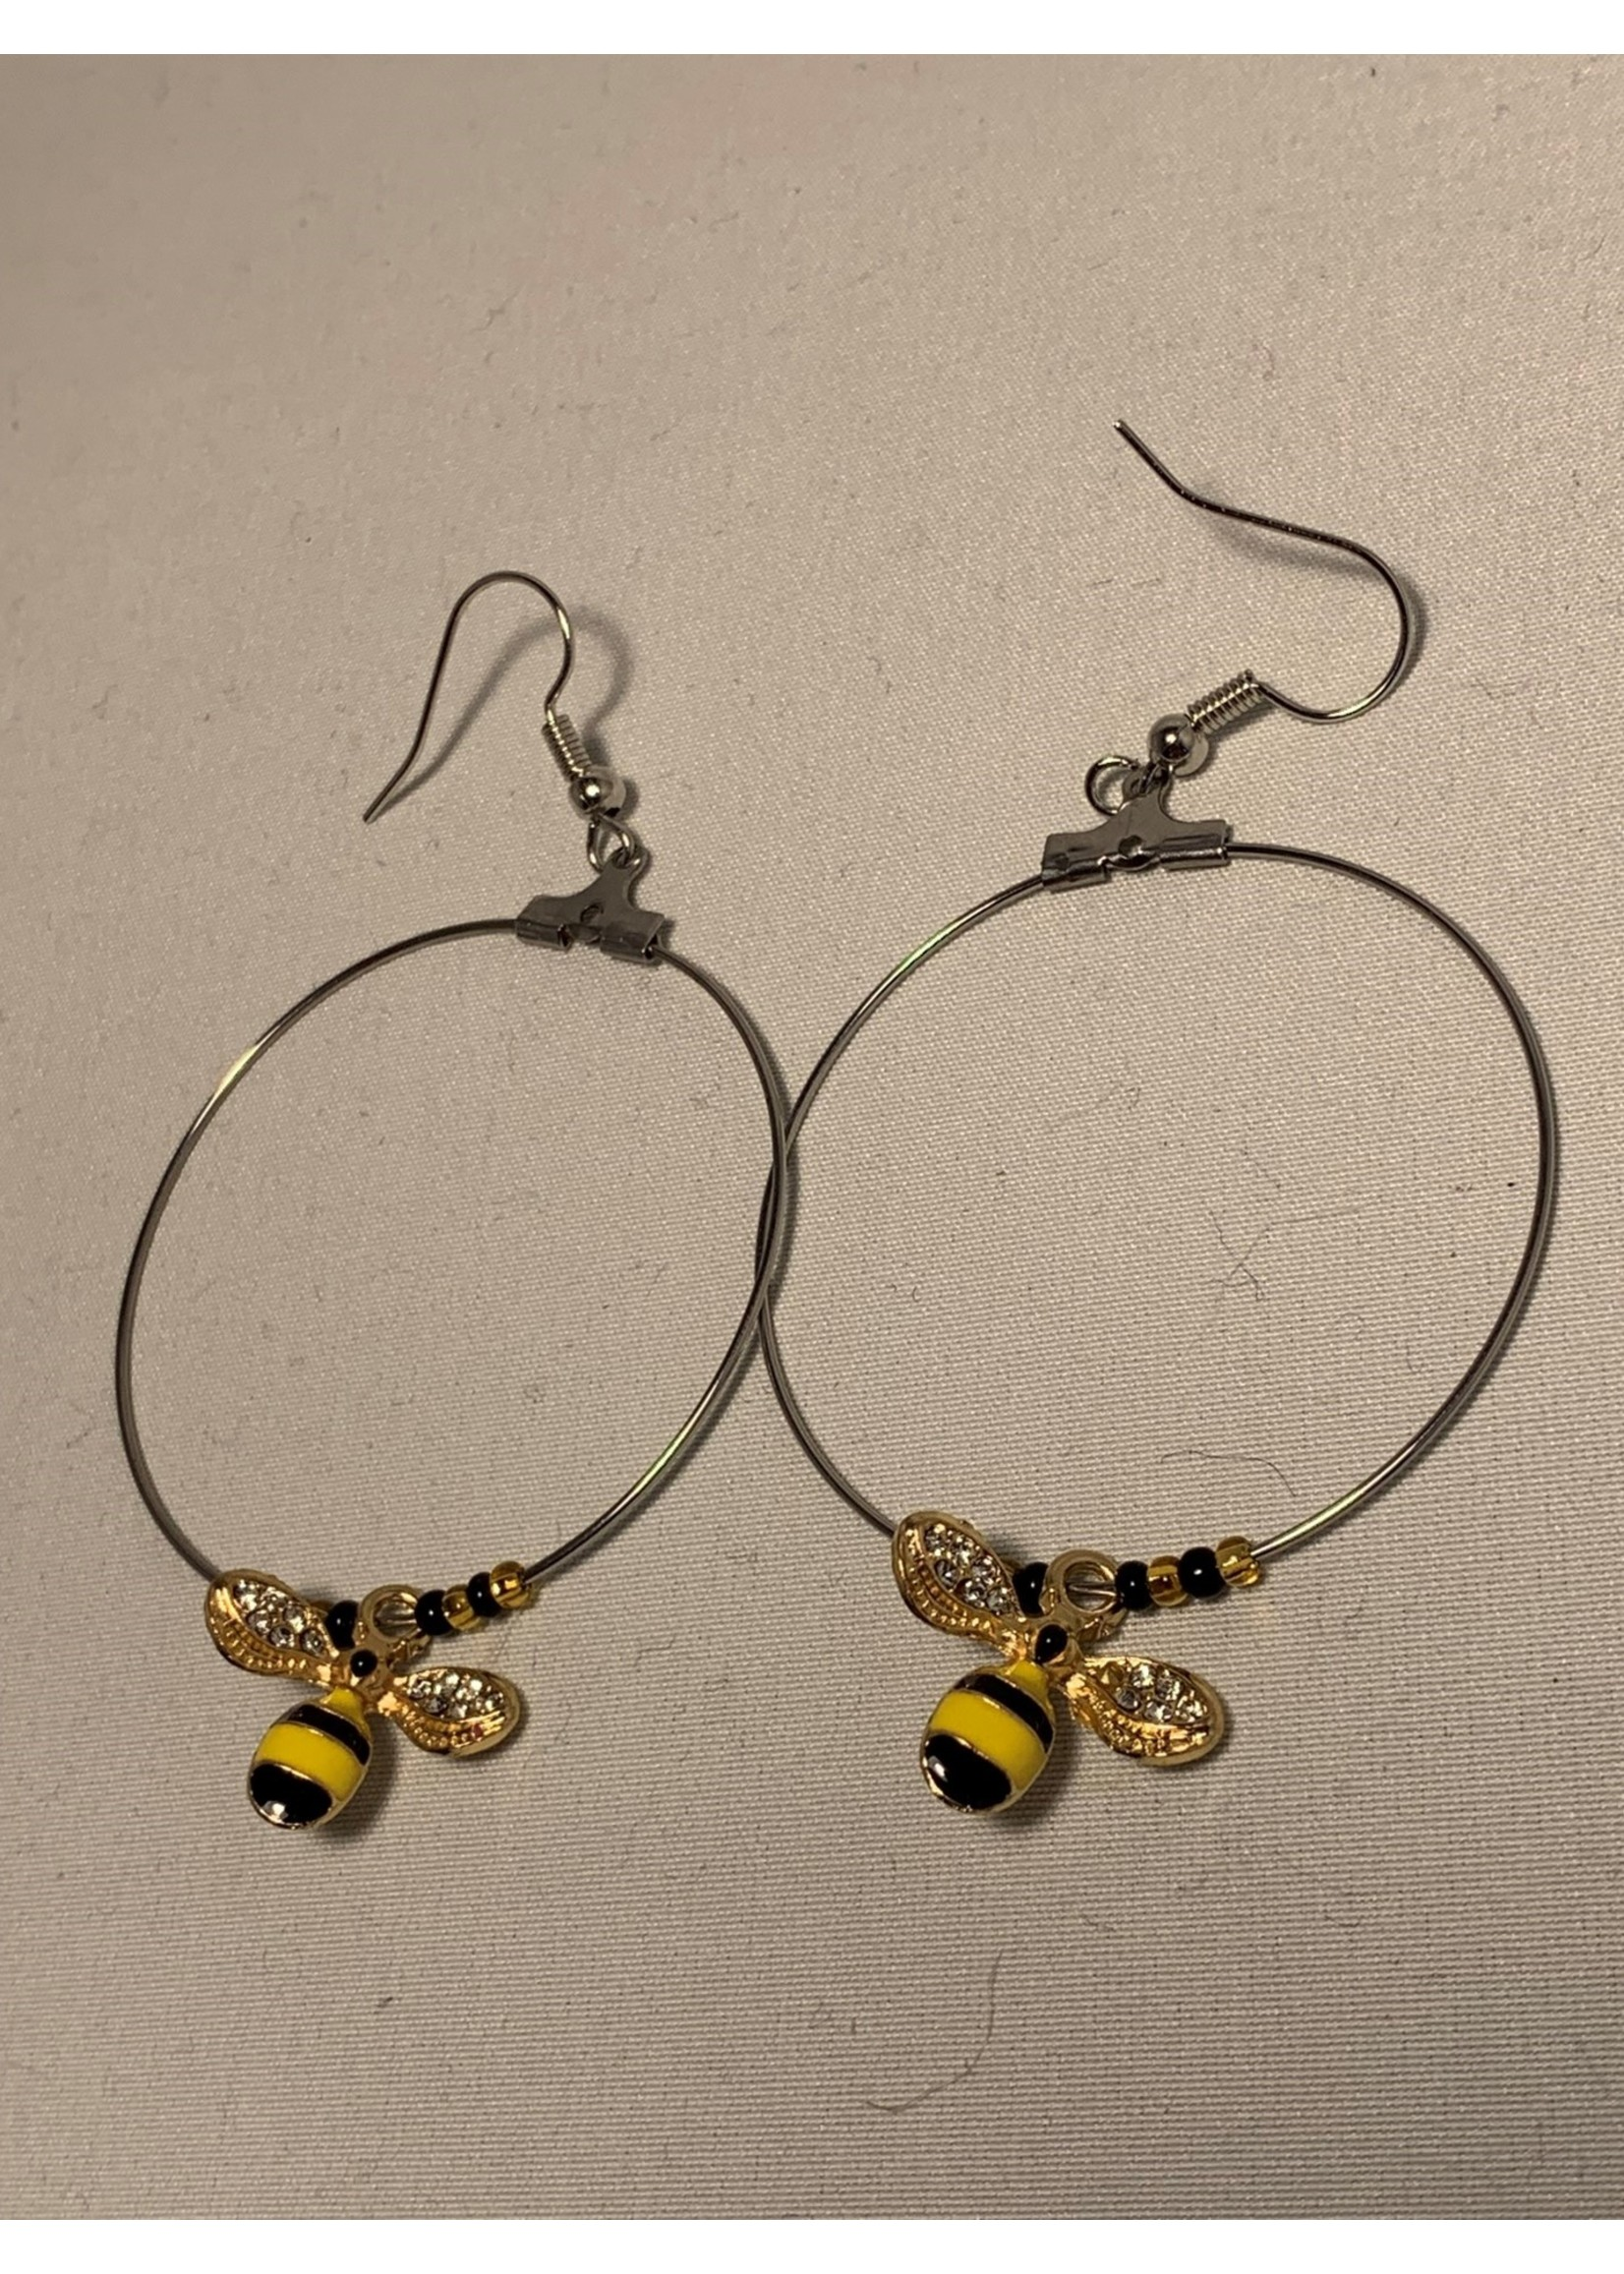 Large Hoop Earrings Bumblebees with Silver Lined Gold and Opaque Black Beads (SOLD)